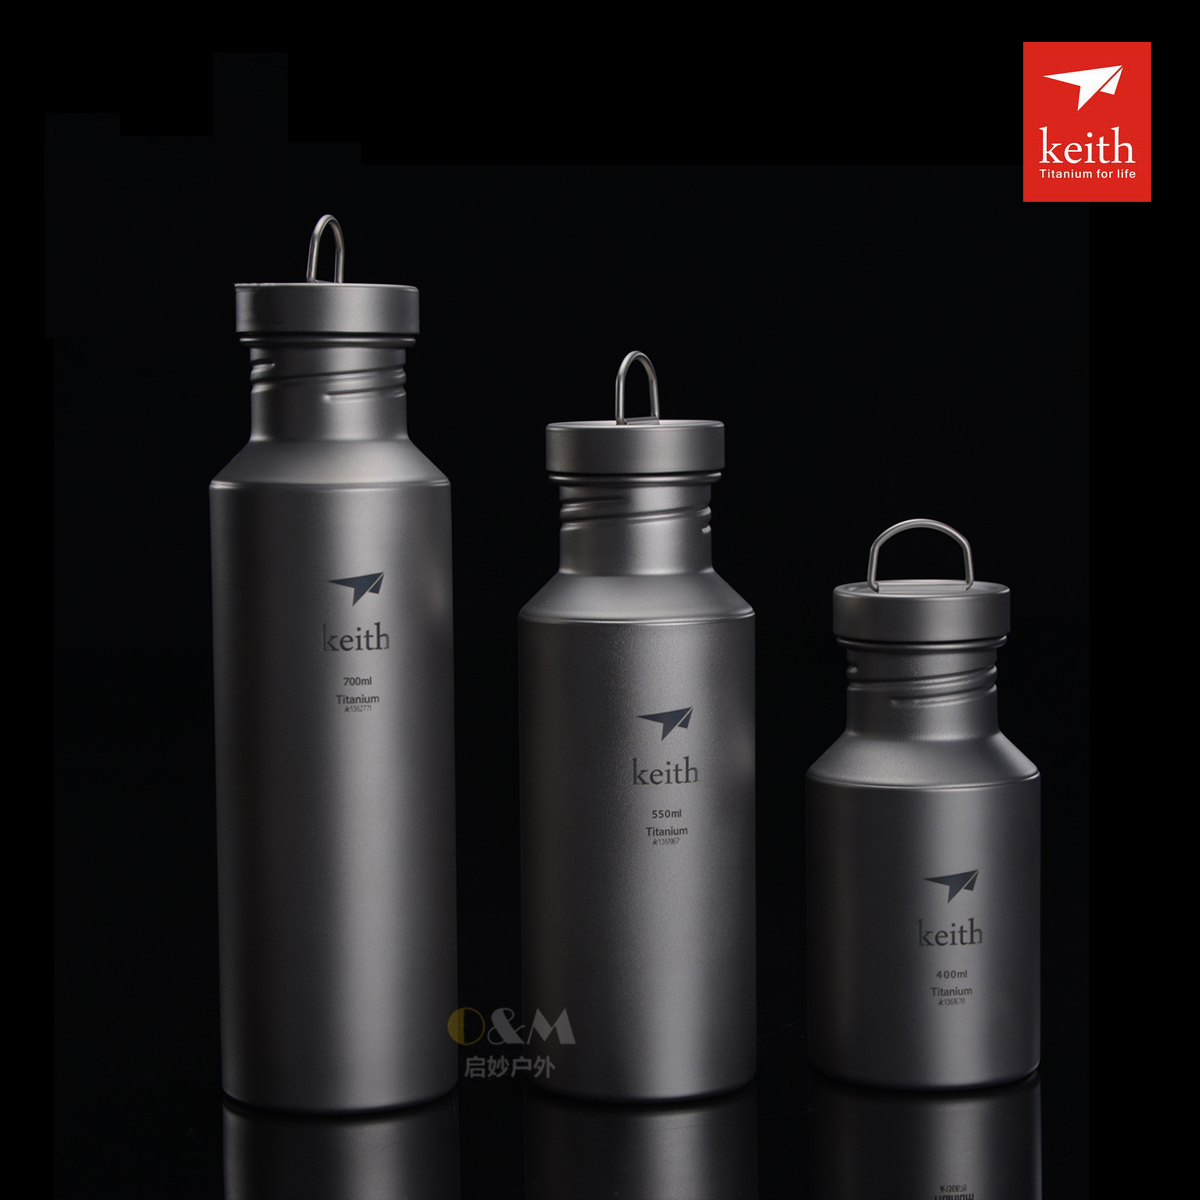 Keith/titanium armor adams outdoor kettle can boil water without heavy metal sports bottle riding kettle